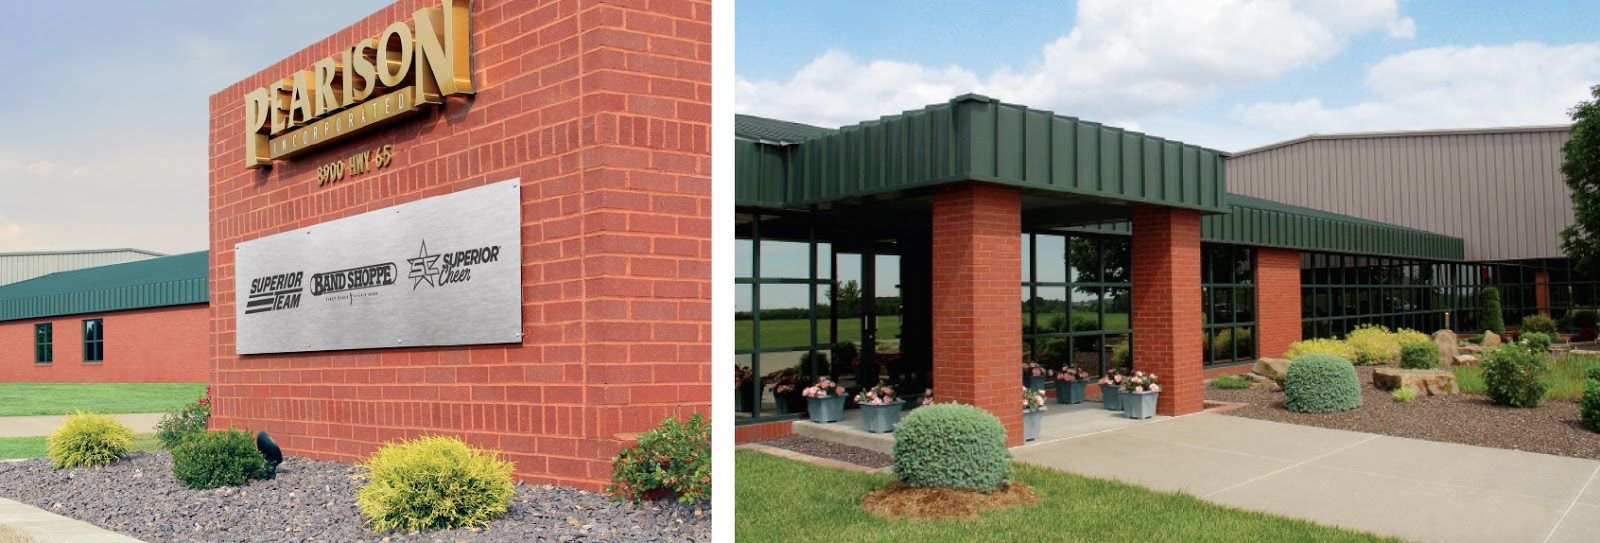 Pearison Inc, home of Band Shoppe, Superior Cheer, and Superior Team